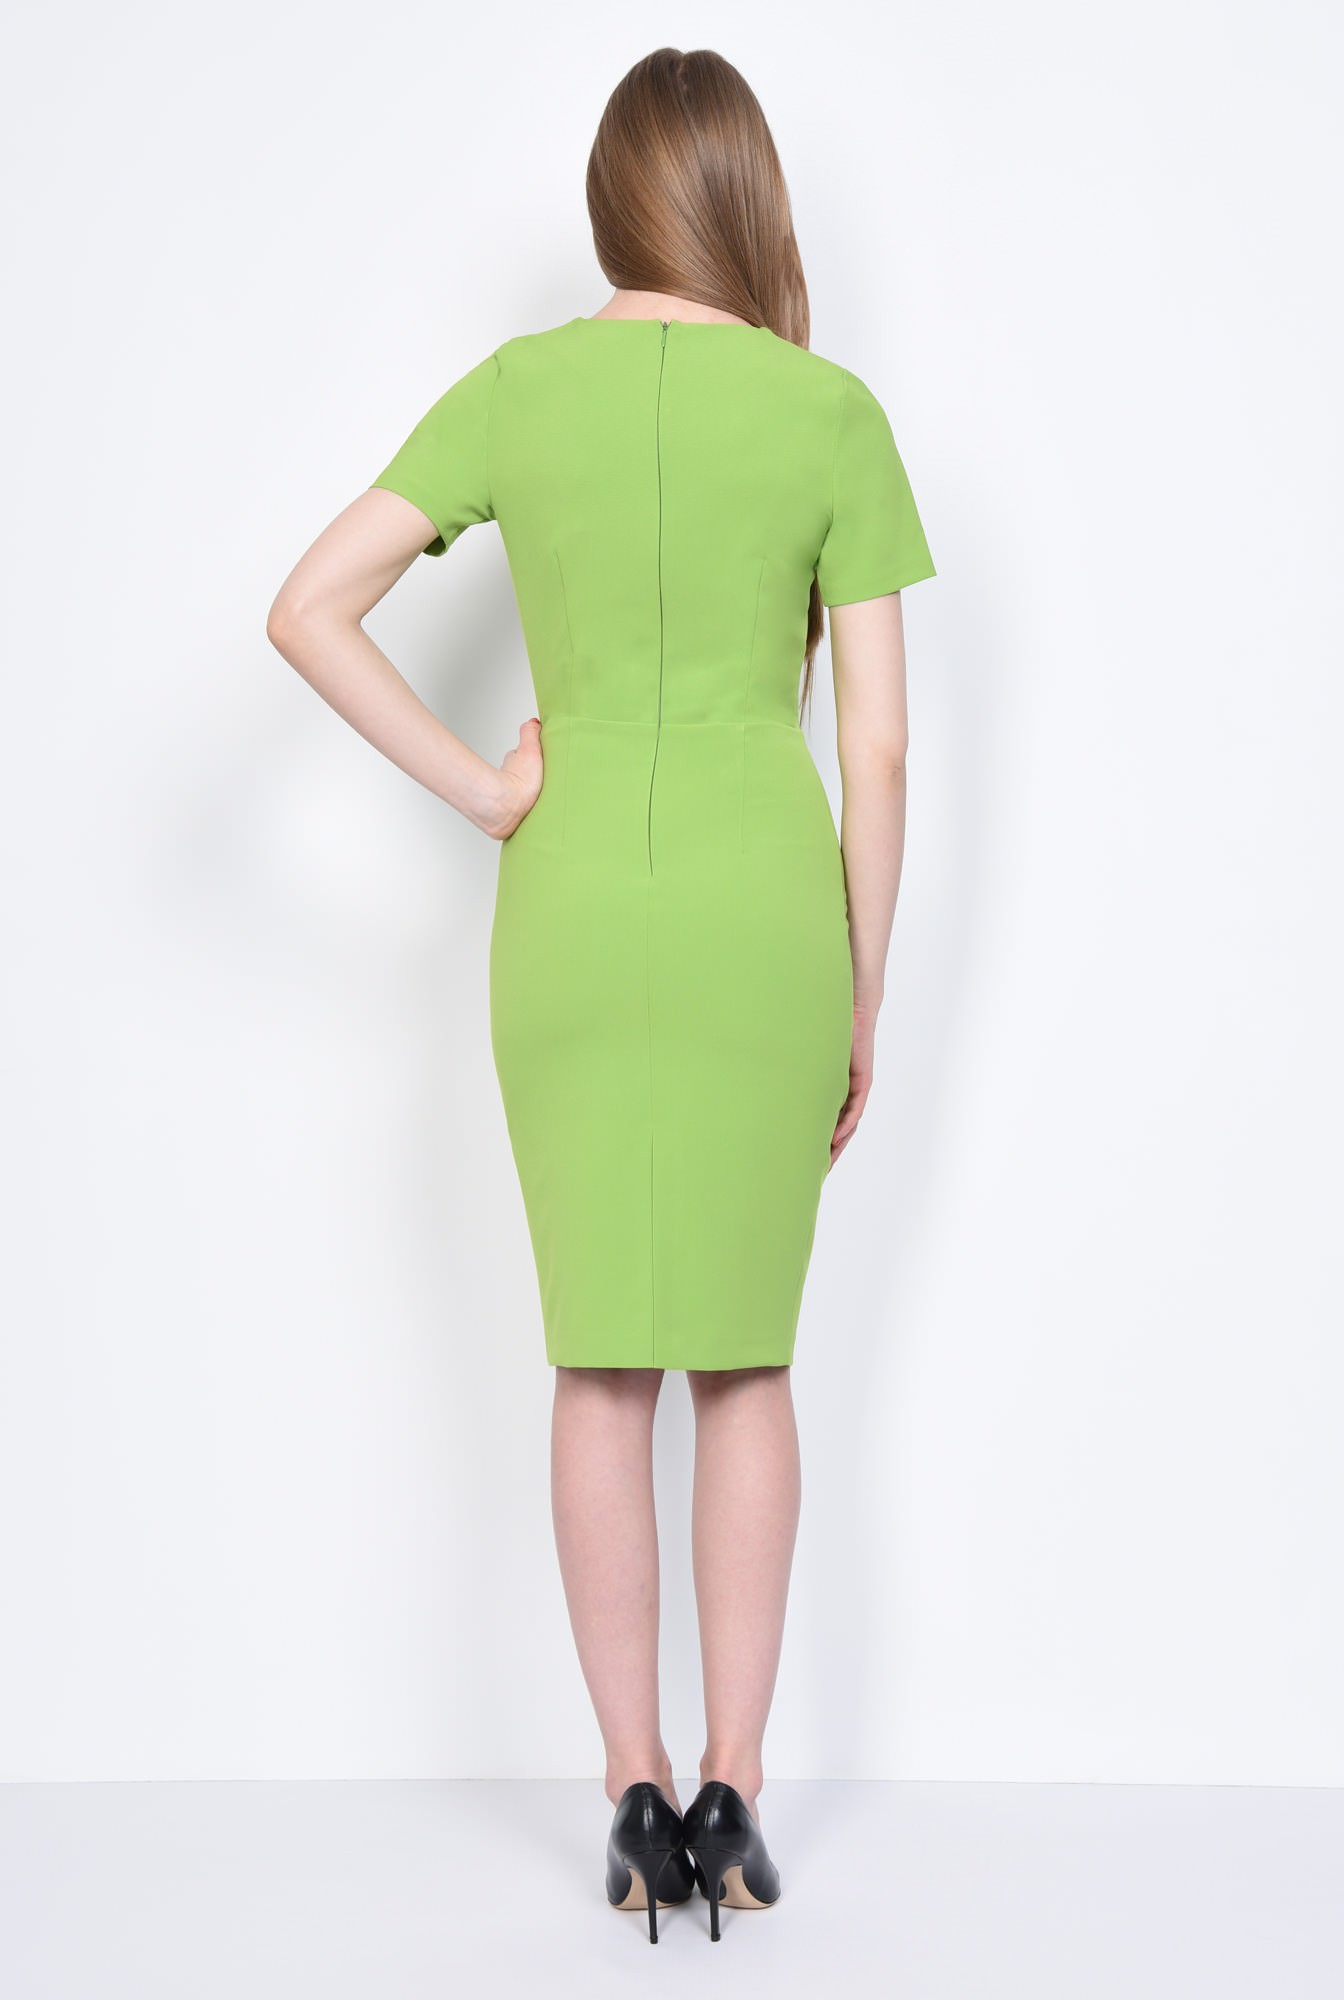 0 - ROCHIE OFFICE CONICA R 265-VERDE